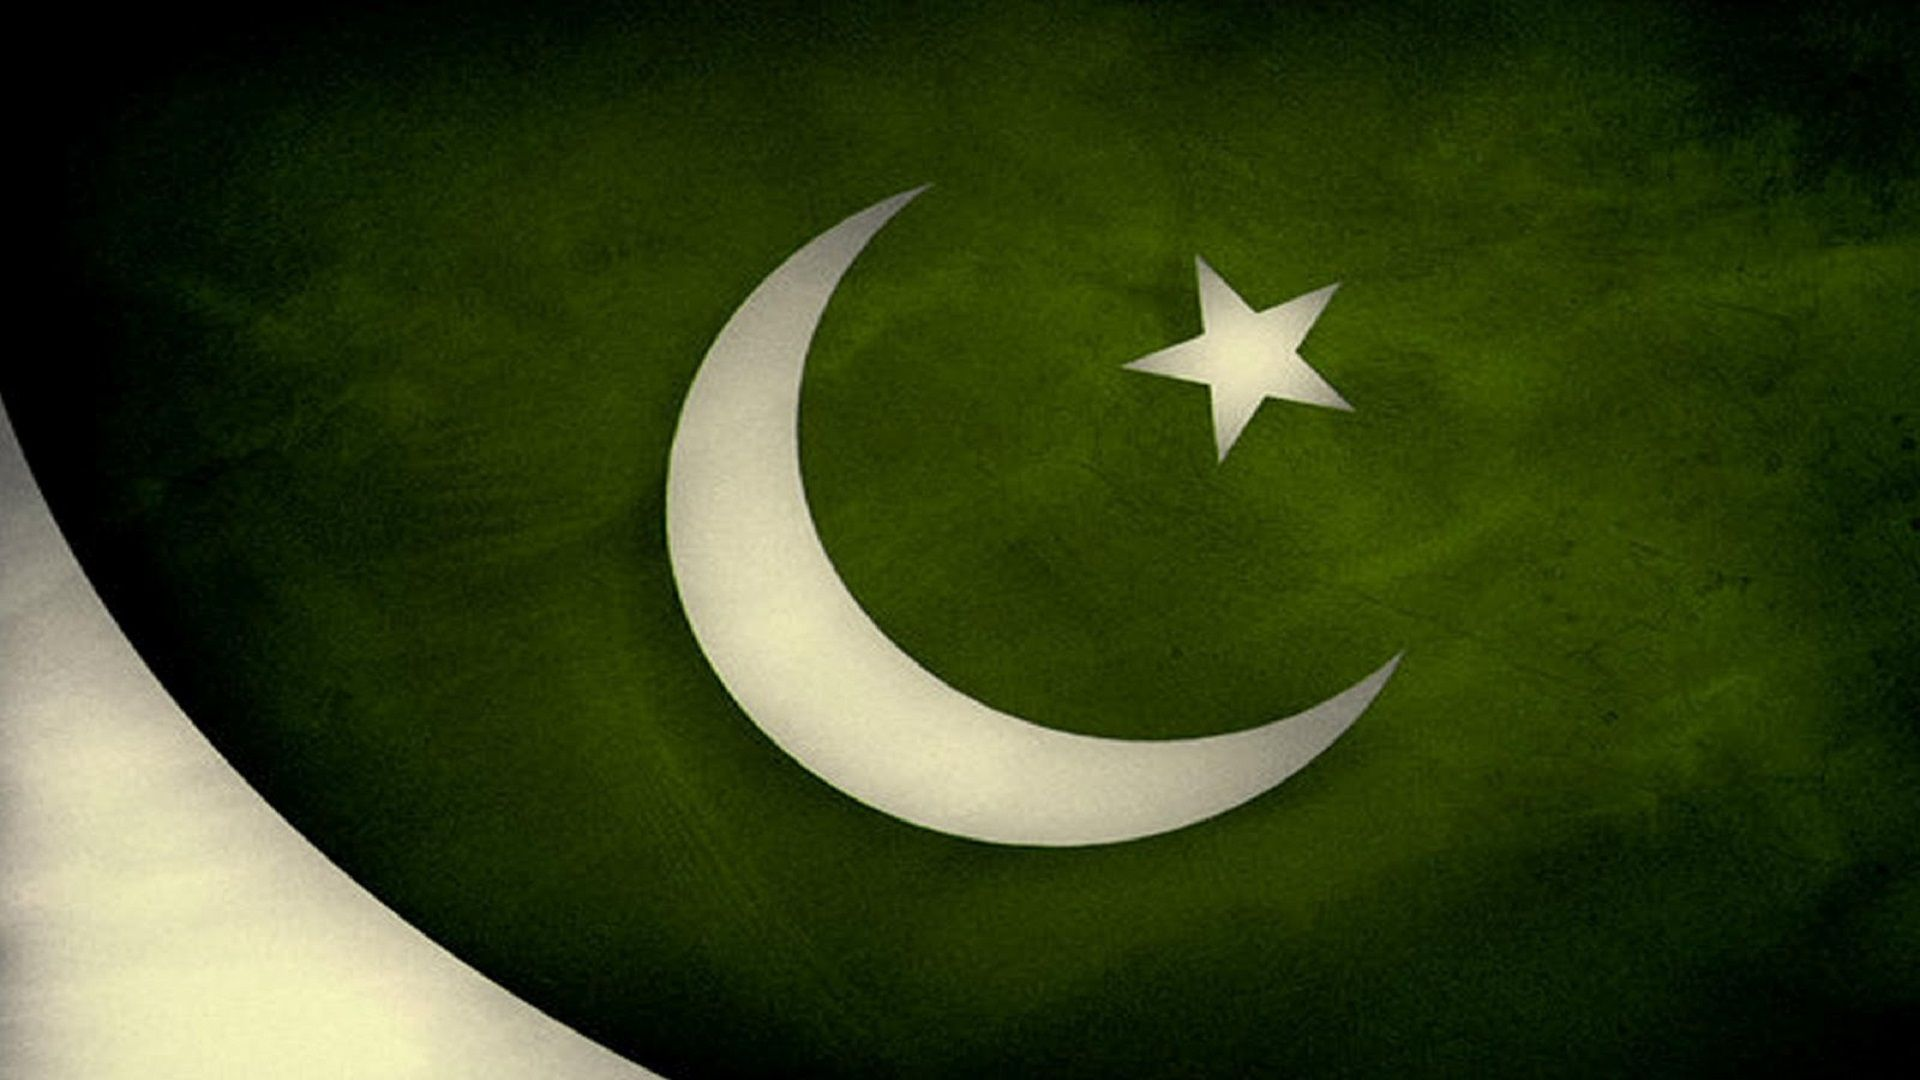 1920x1080 Pakistan Flag Wallpaper 2 - Desktop Wallpapers HD Free ...